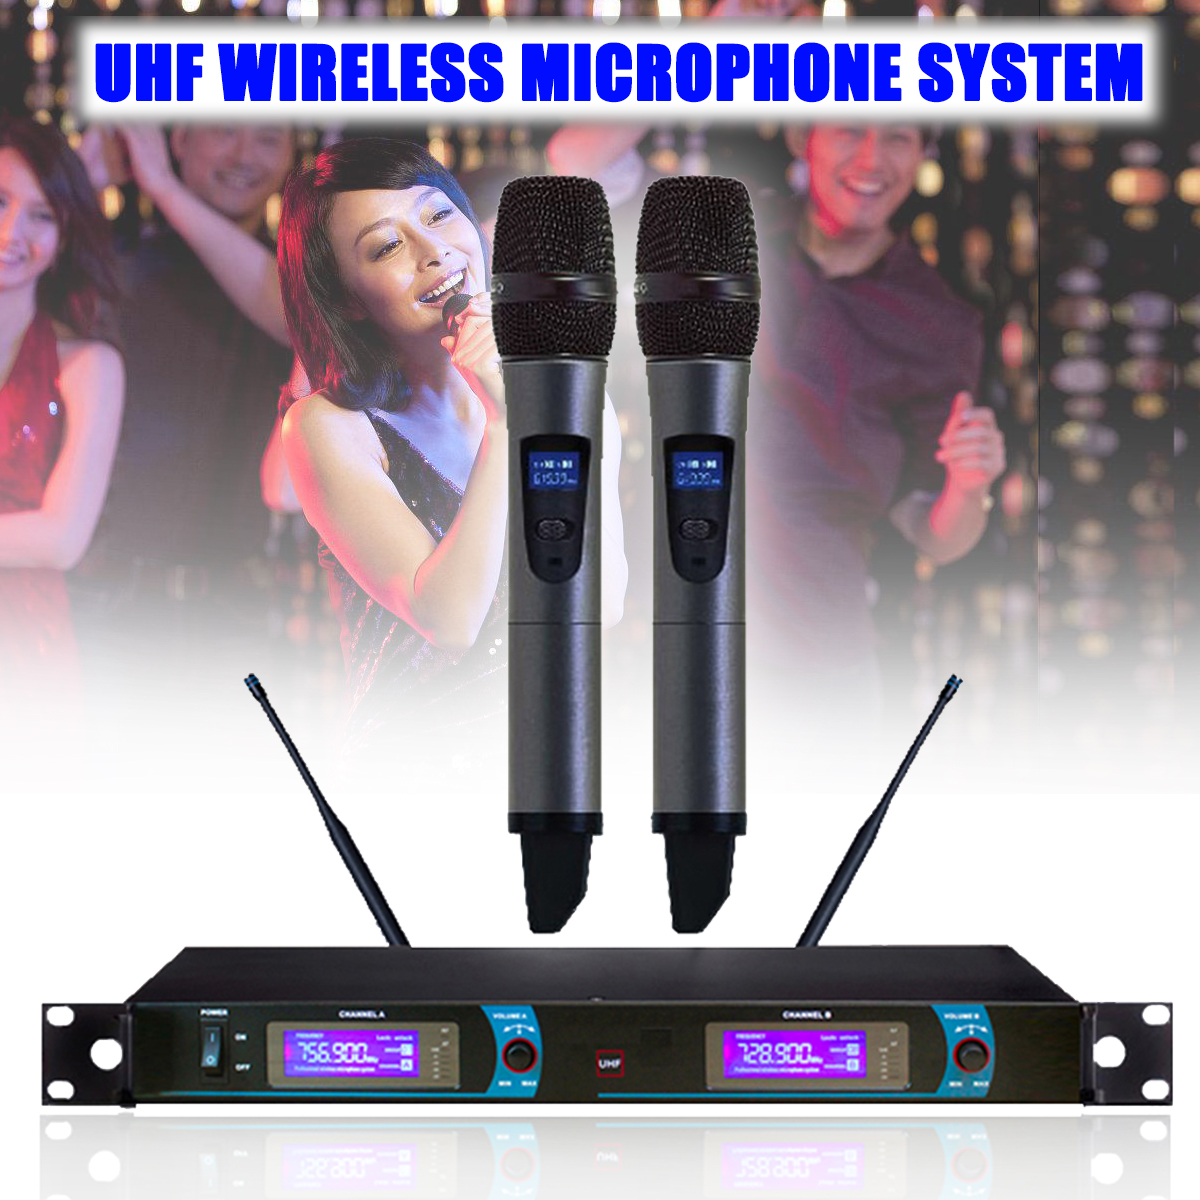 LCD Display UHF Wireless Dual Studio Microphone Mic System Home KTV Karaoke DJ Wireless Microphone Profesional for Computer dual uhf handheld wireless microphone lcd audio system 2 mic for karaoke ktv